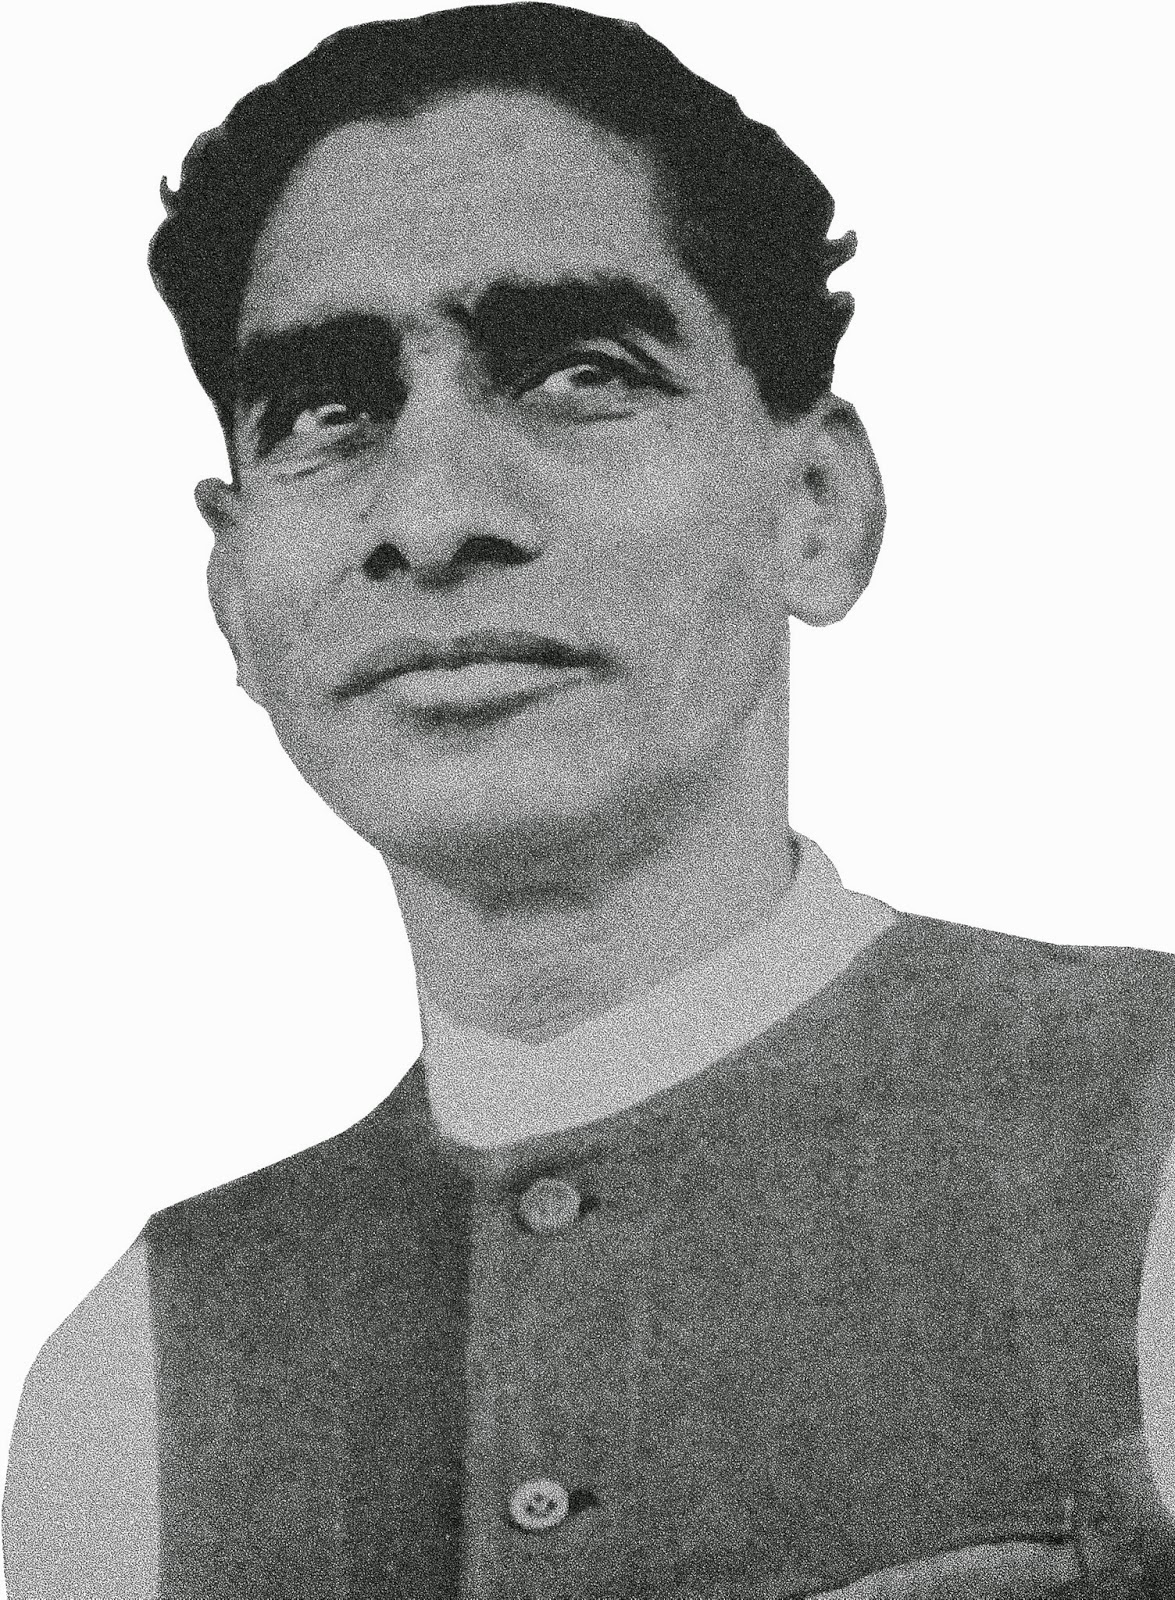 Poorn Puran Chandra Jain Tunklia, Freedom fighter and Sarvoday leader